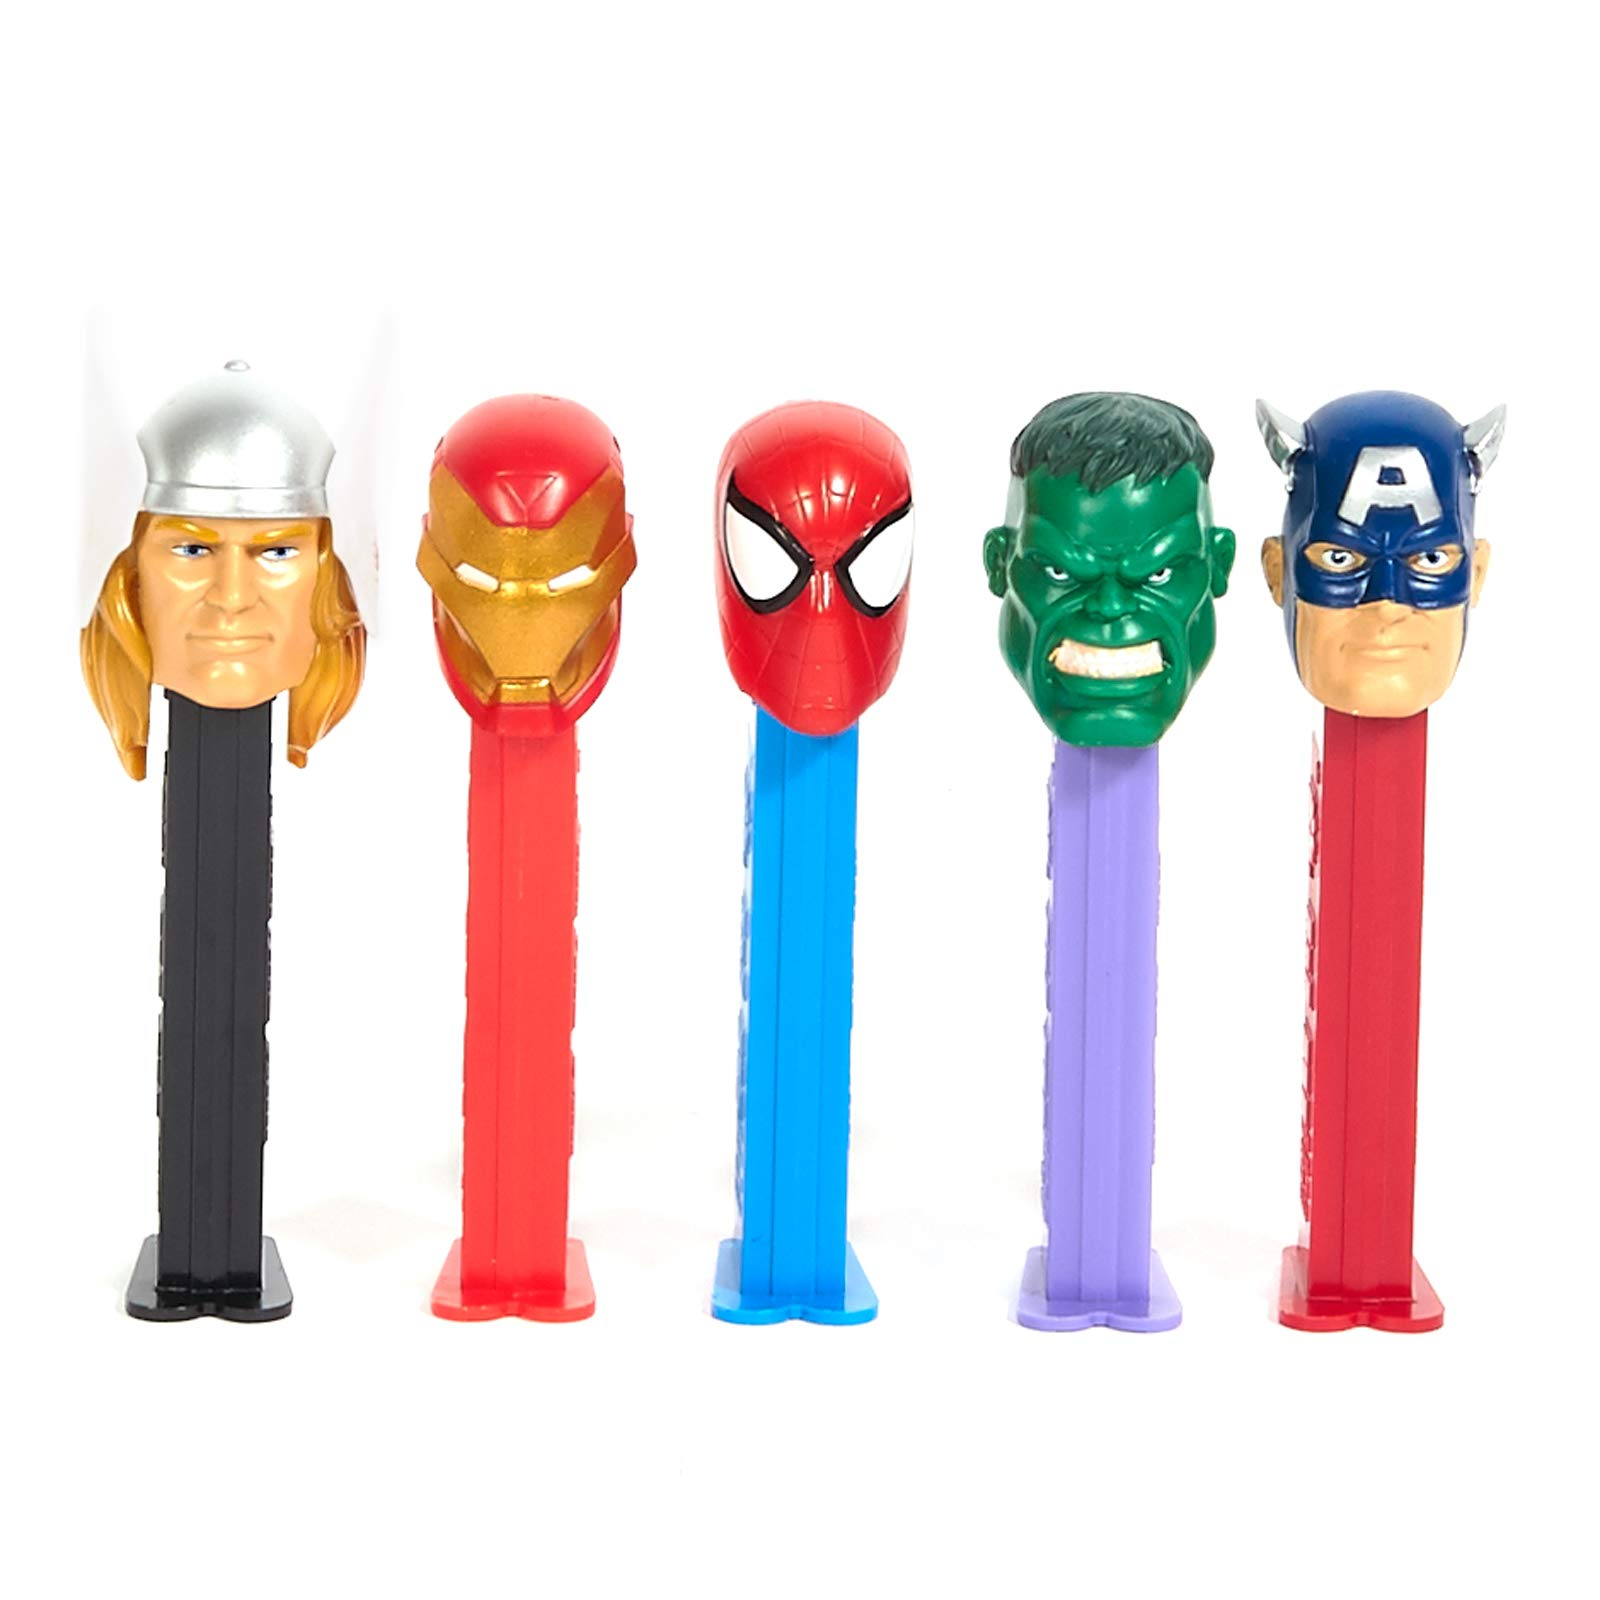 Marvel Avengers Pez Dispenser Merchandise & Memorabilia choose By Name From Drop Down Below Big Clearance Sale